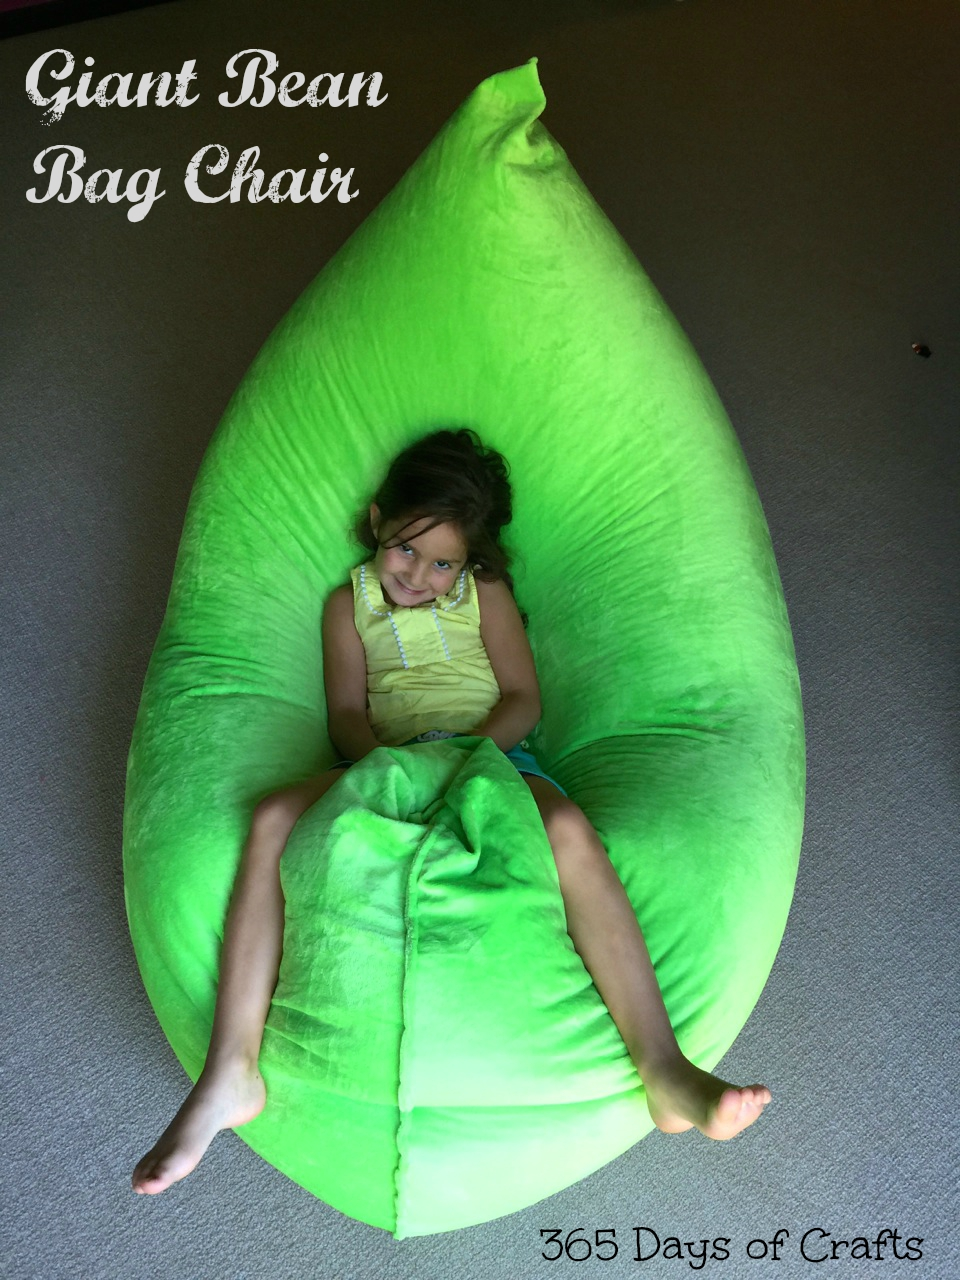 How to make bean bag chairs - Make A Fatboy Inspired Bean Bag Chair 365 Days Of Crafts Diy Art And Craft Inspiration For You And Your Home